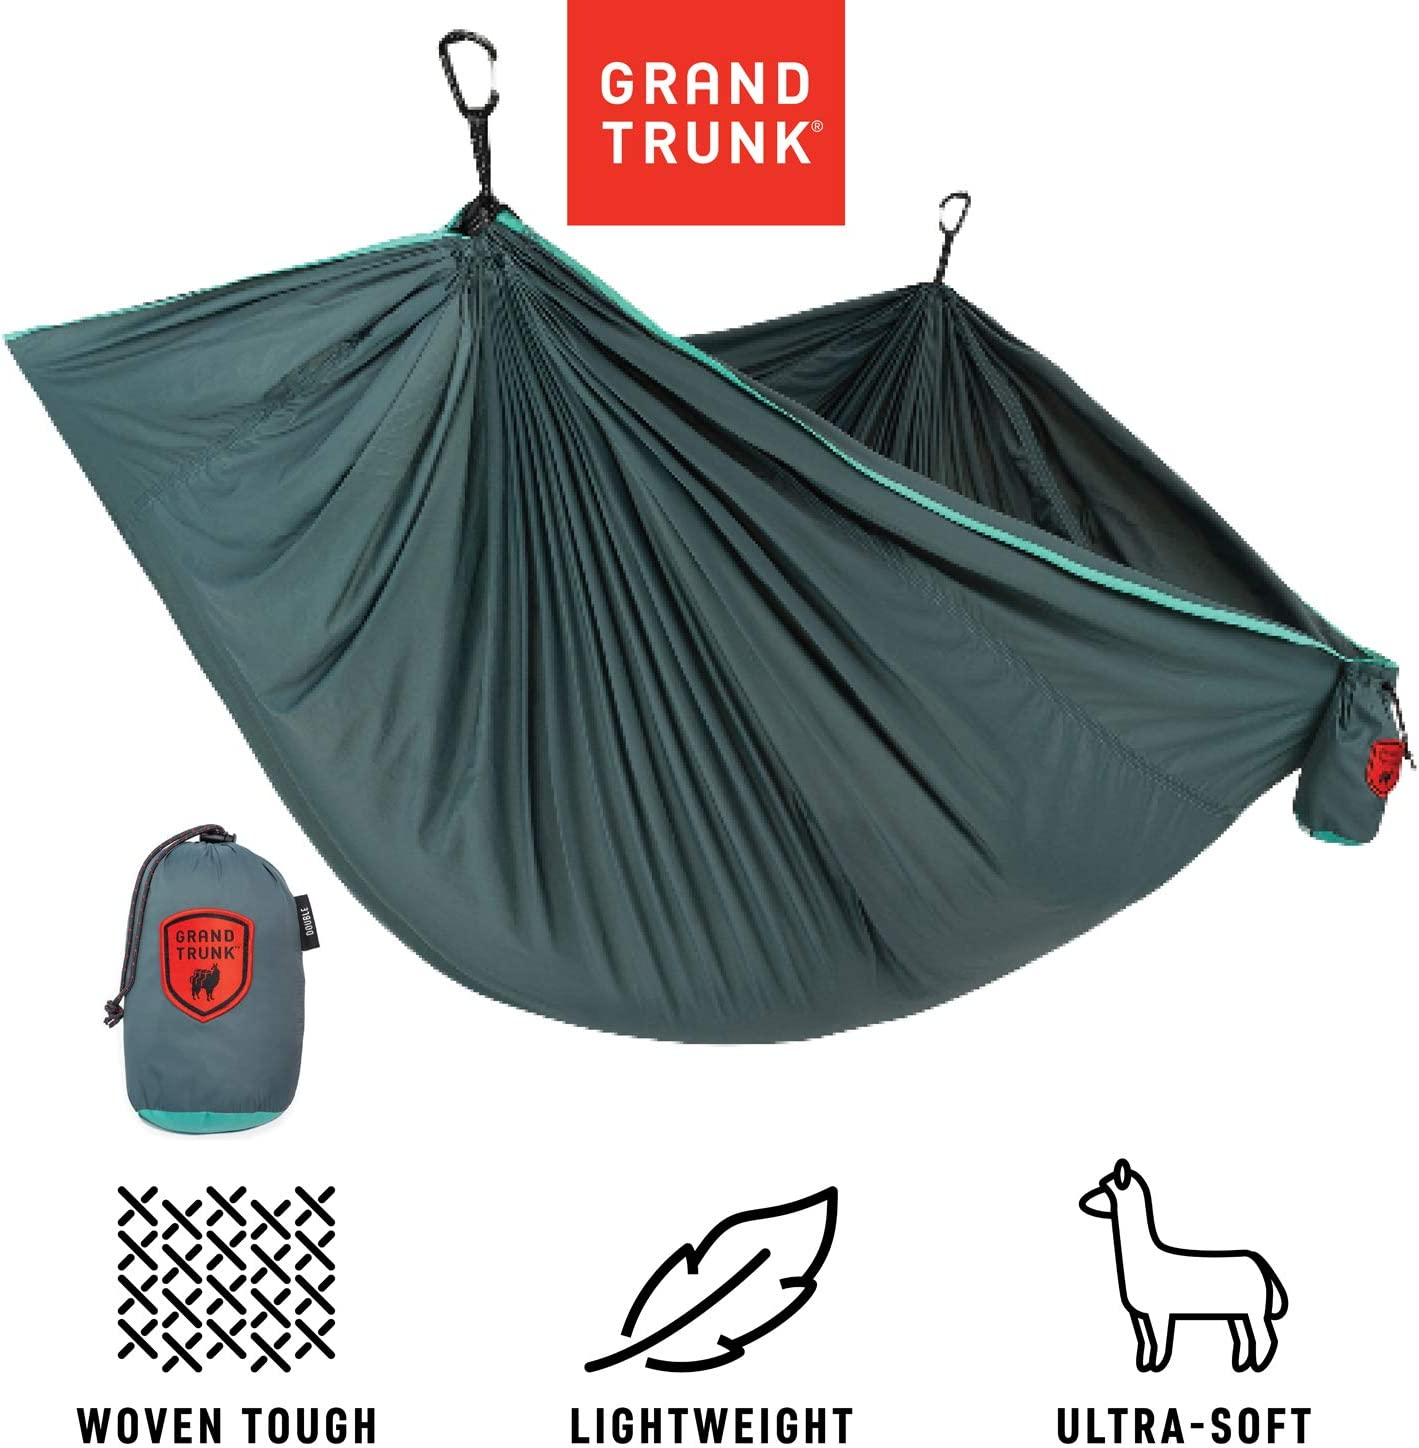 Grand Trunk Trunk Tech Double Hammock Strong, Light, and Portable – Perfect for Outdoor Adventures, Backpacking, and Festivals